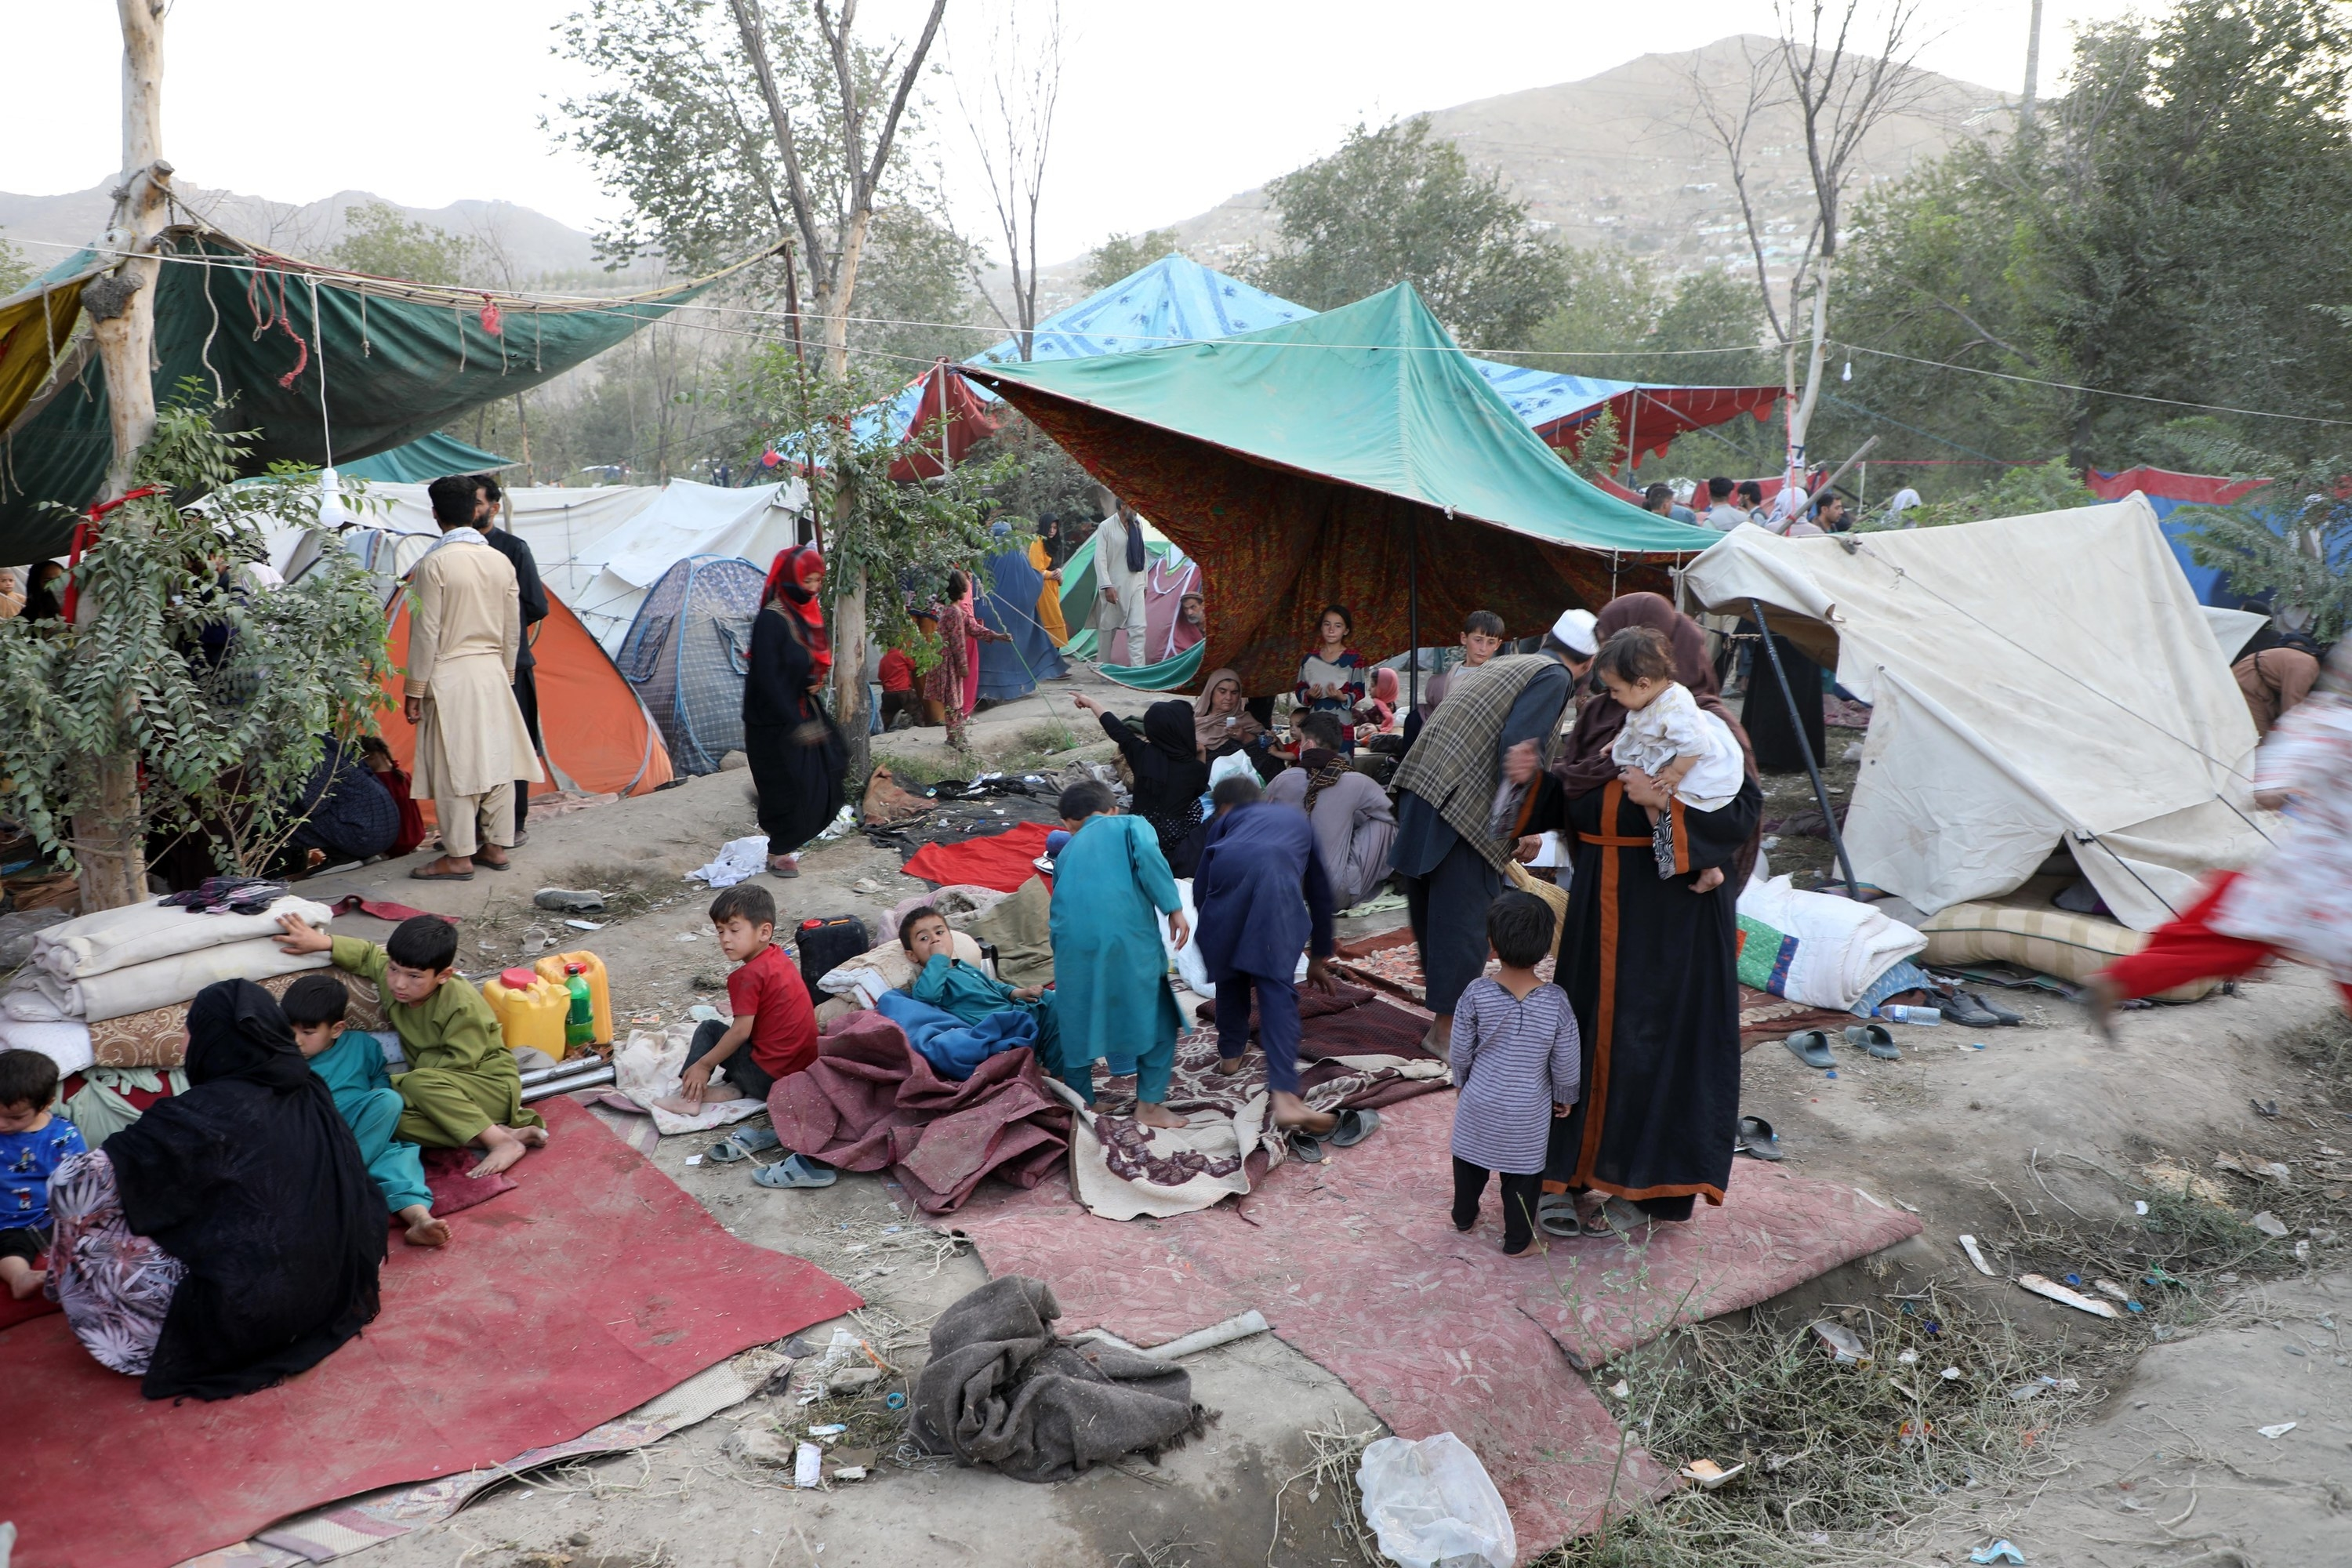 Makeshift tents and children sleeping on the ground near their families